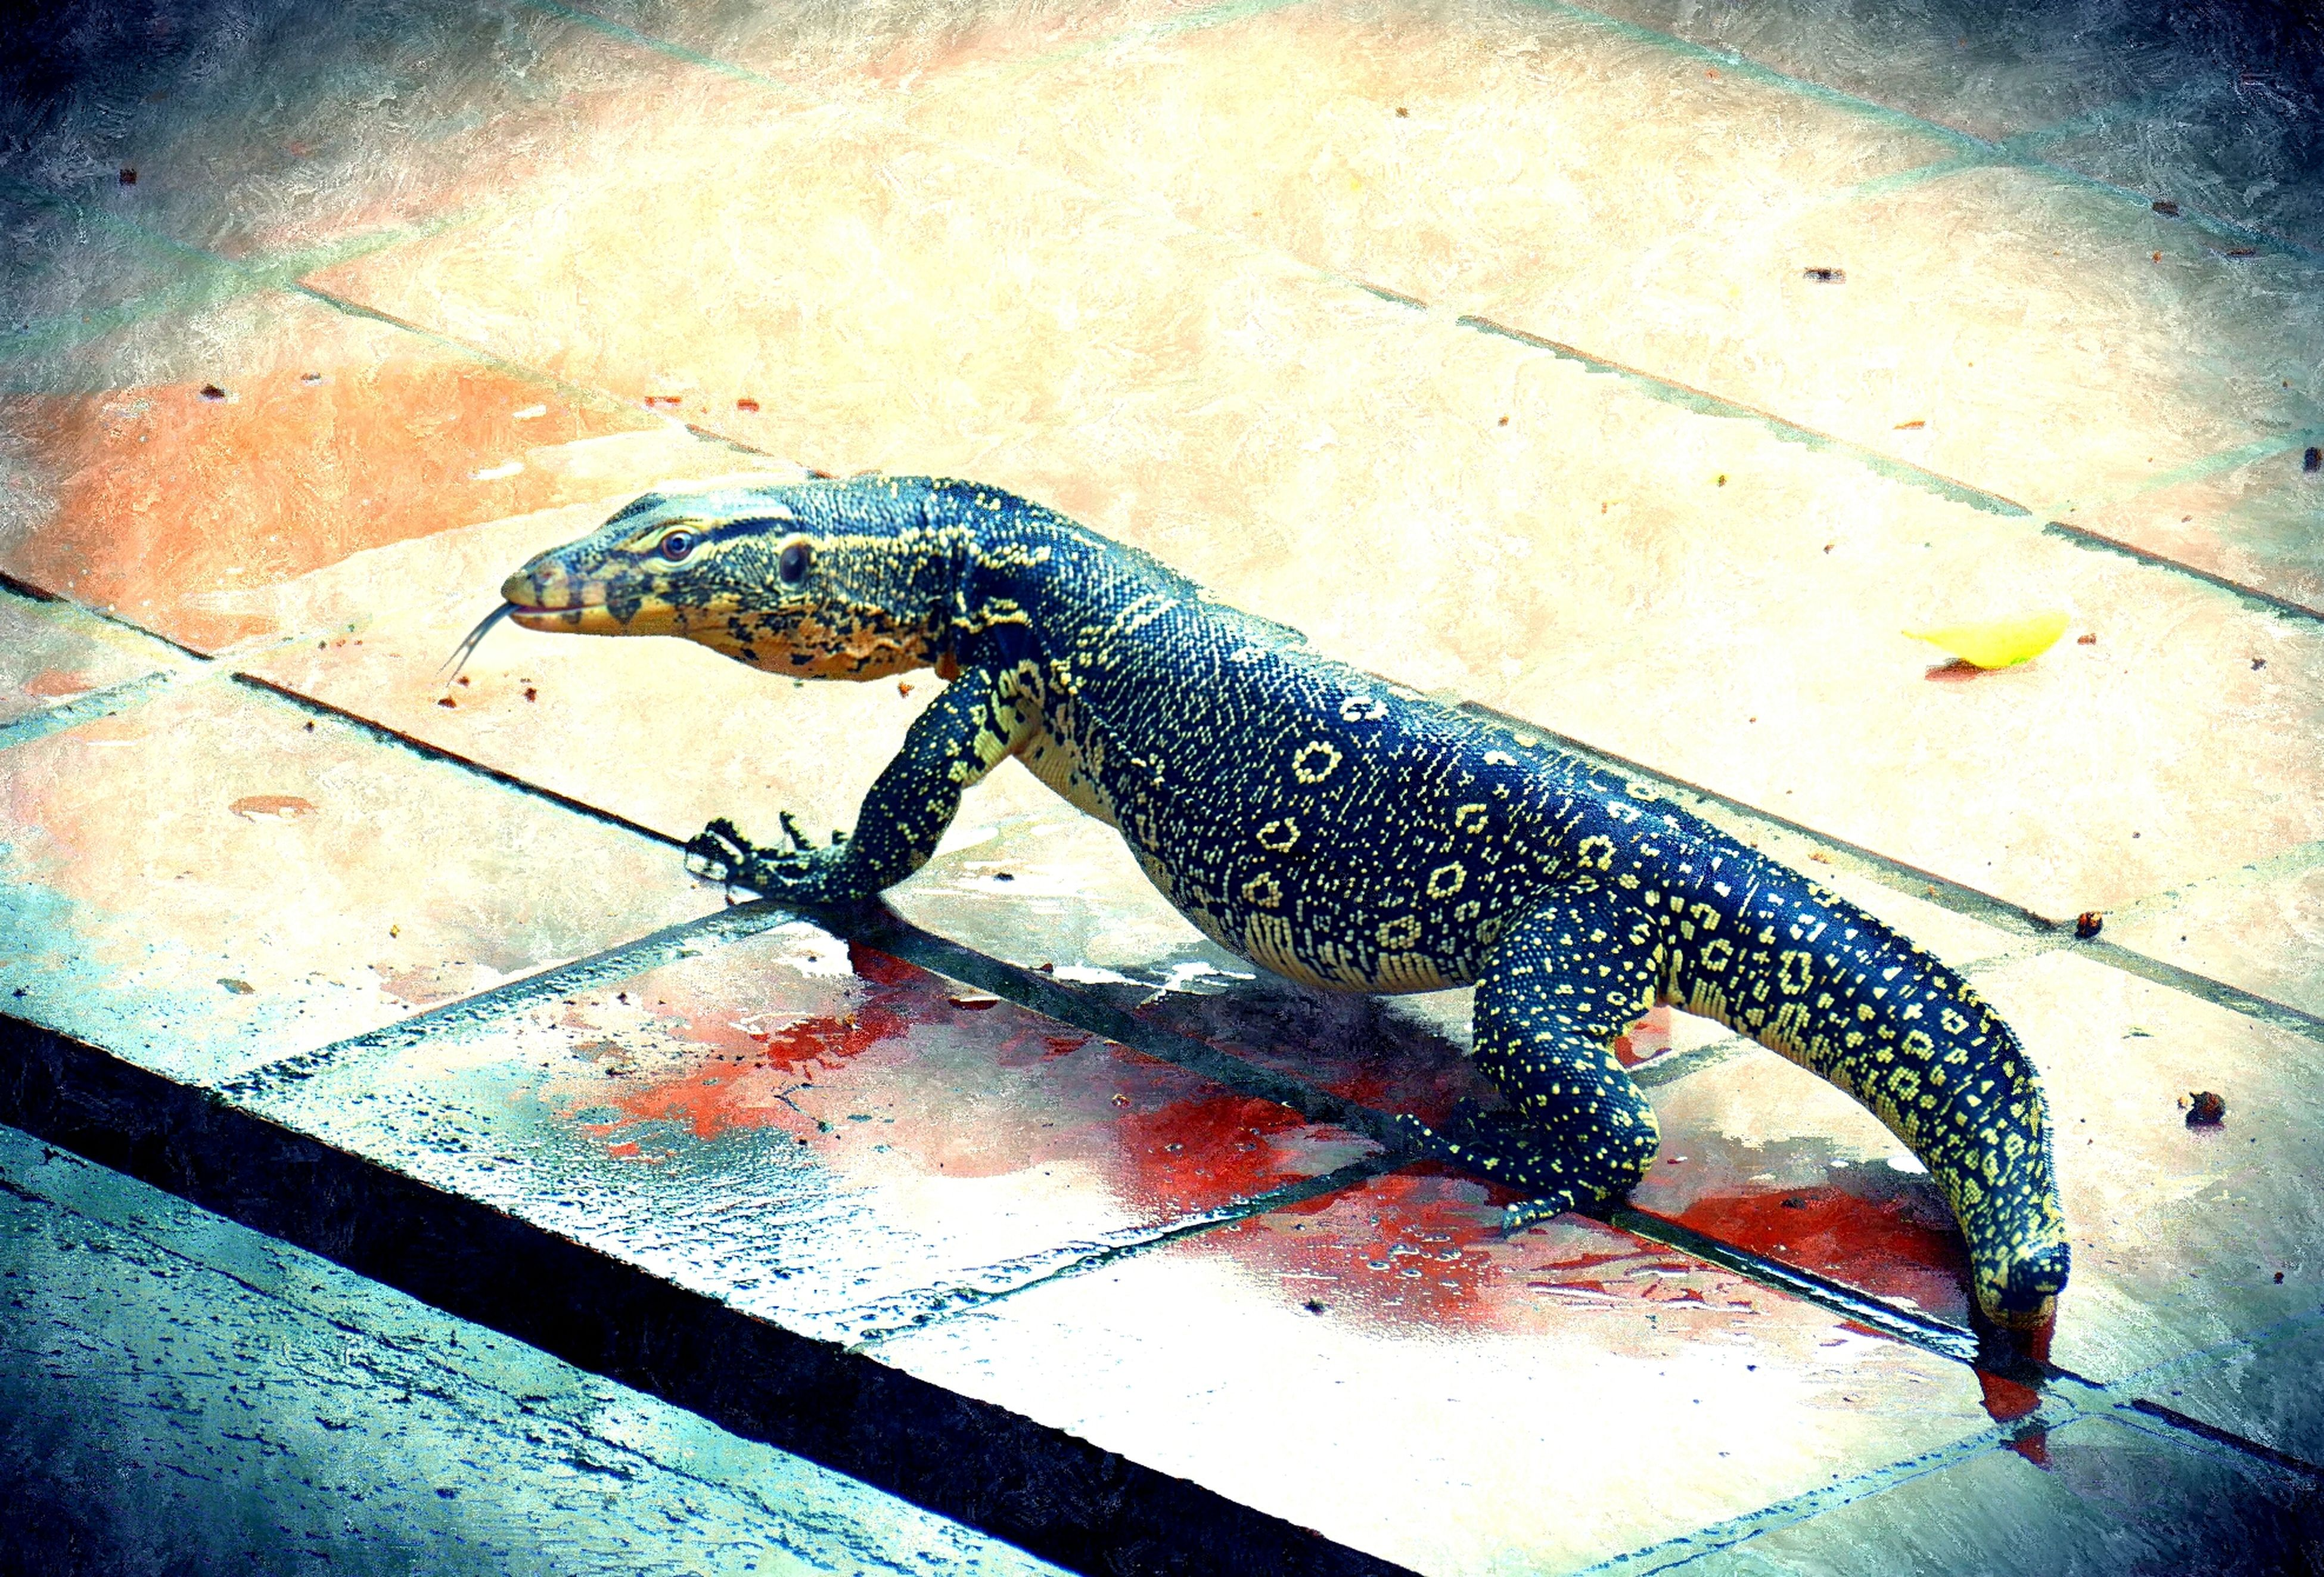 animal themes, high angle view, one animal, animals in the wild, wildlife, fish, reptile, close-up, dead animal, no people, water, indoors, day, lizard, animals in captivity, metal, elevated view, zoology, animal representation